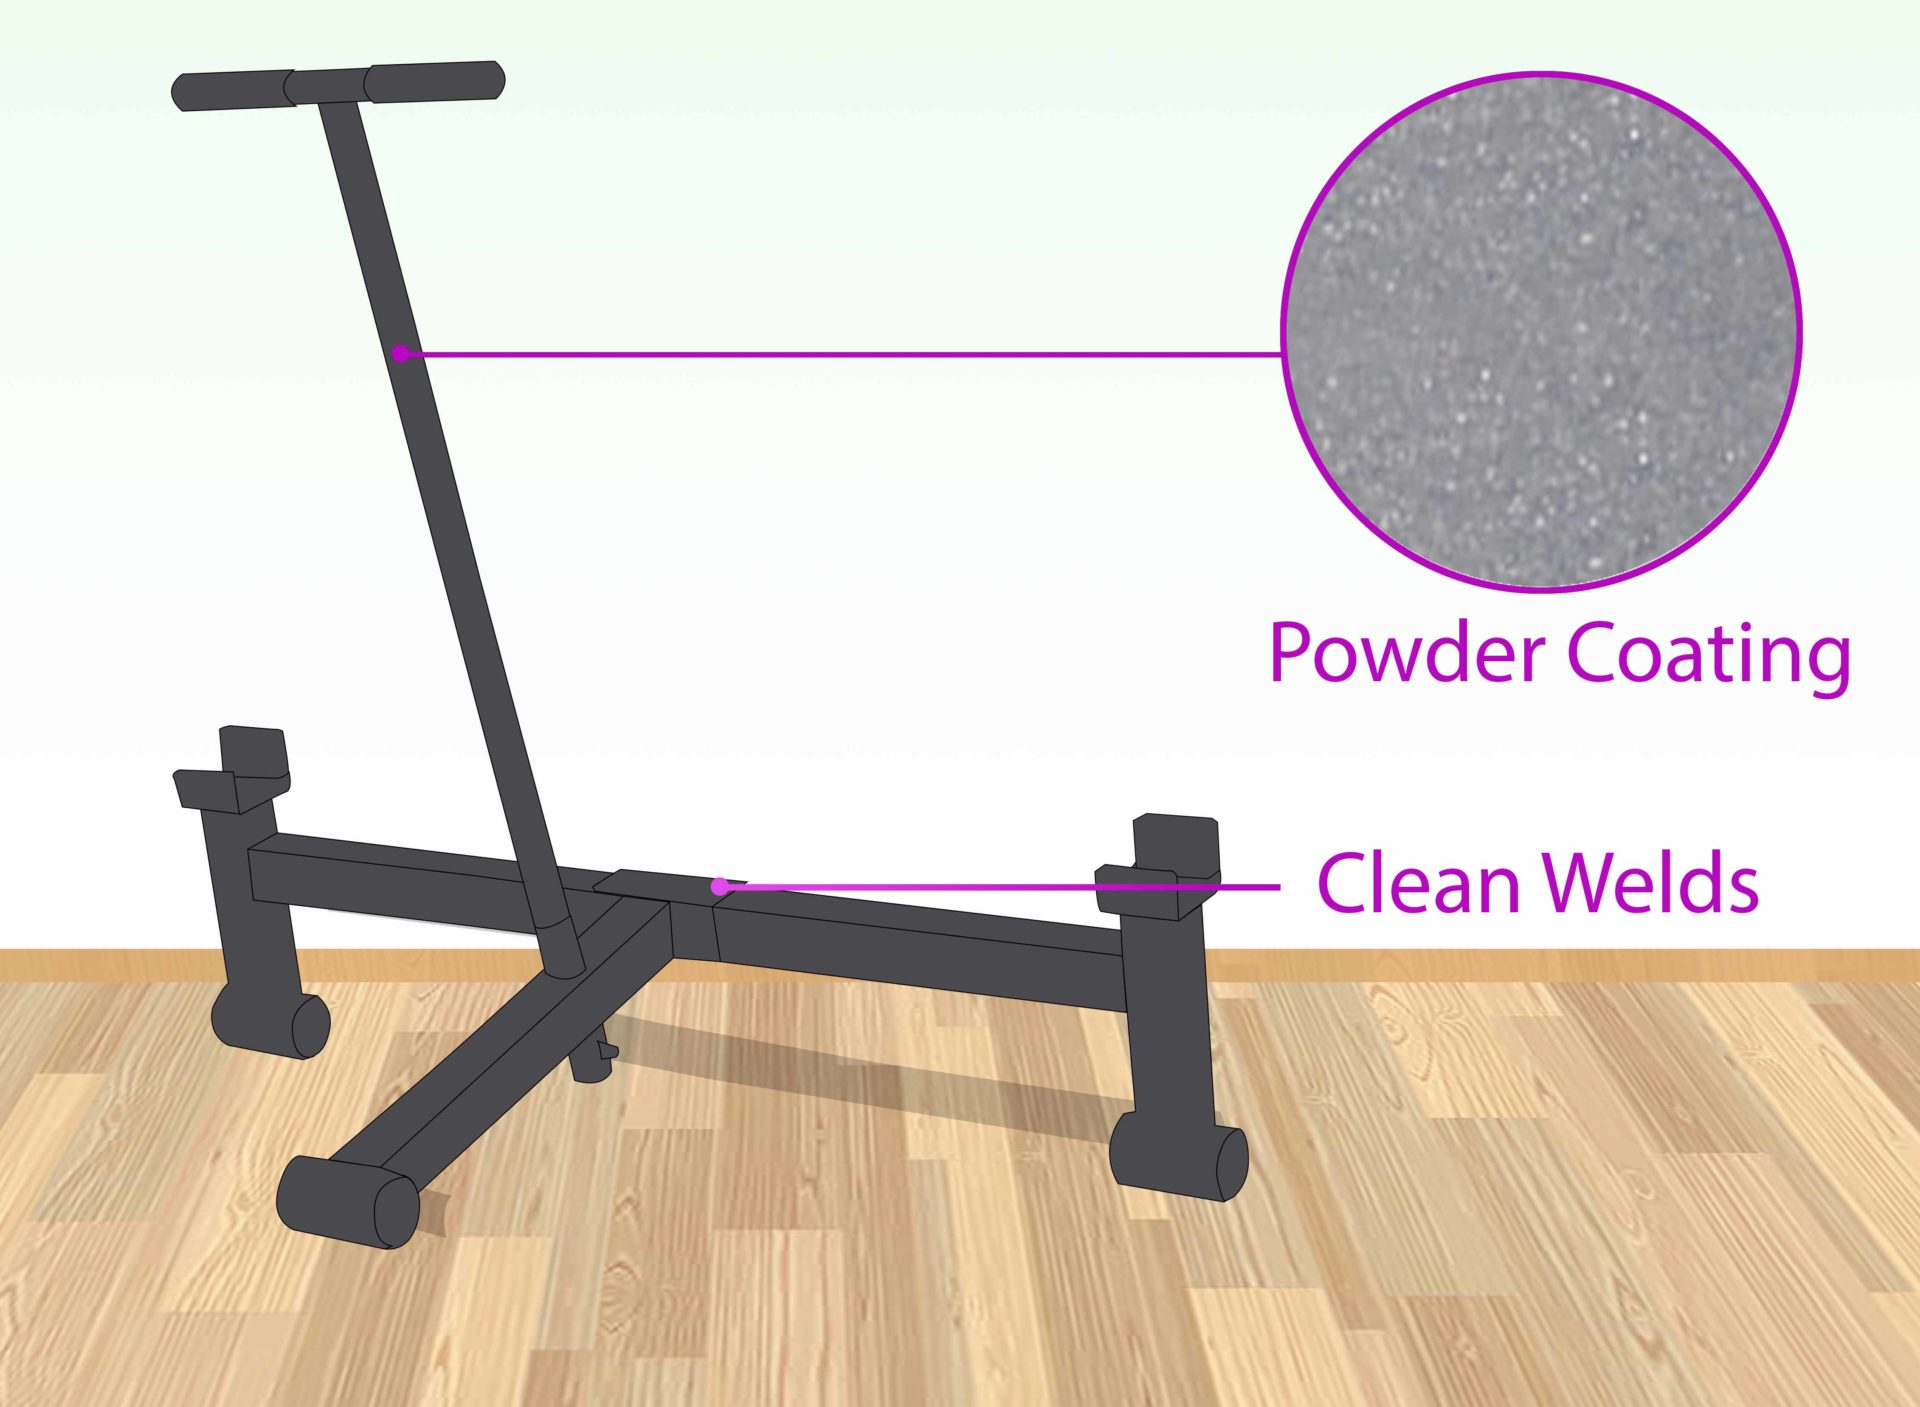 Inspect the construction quality for optimum functionality and barbell protection.